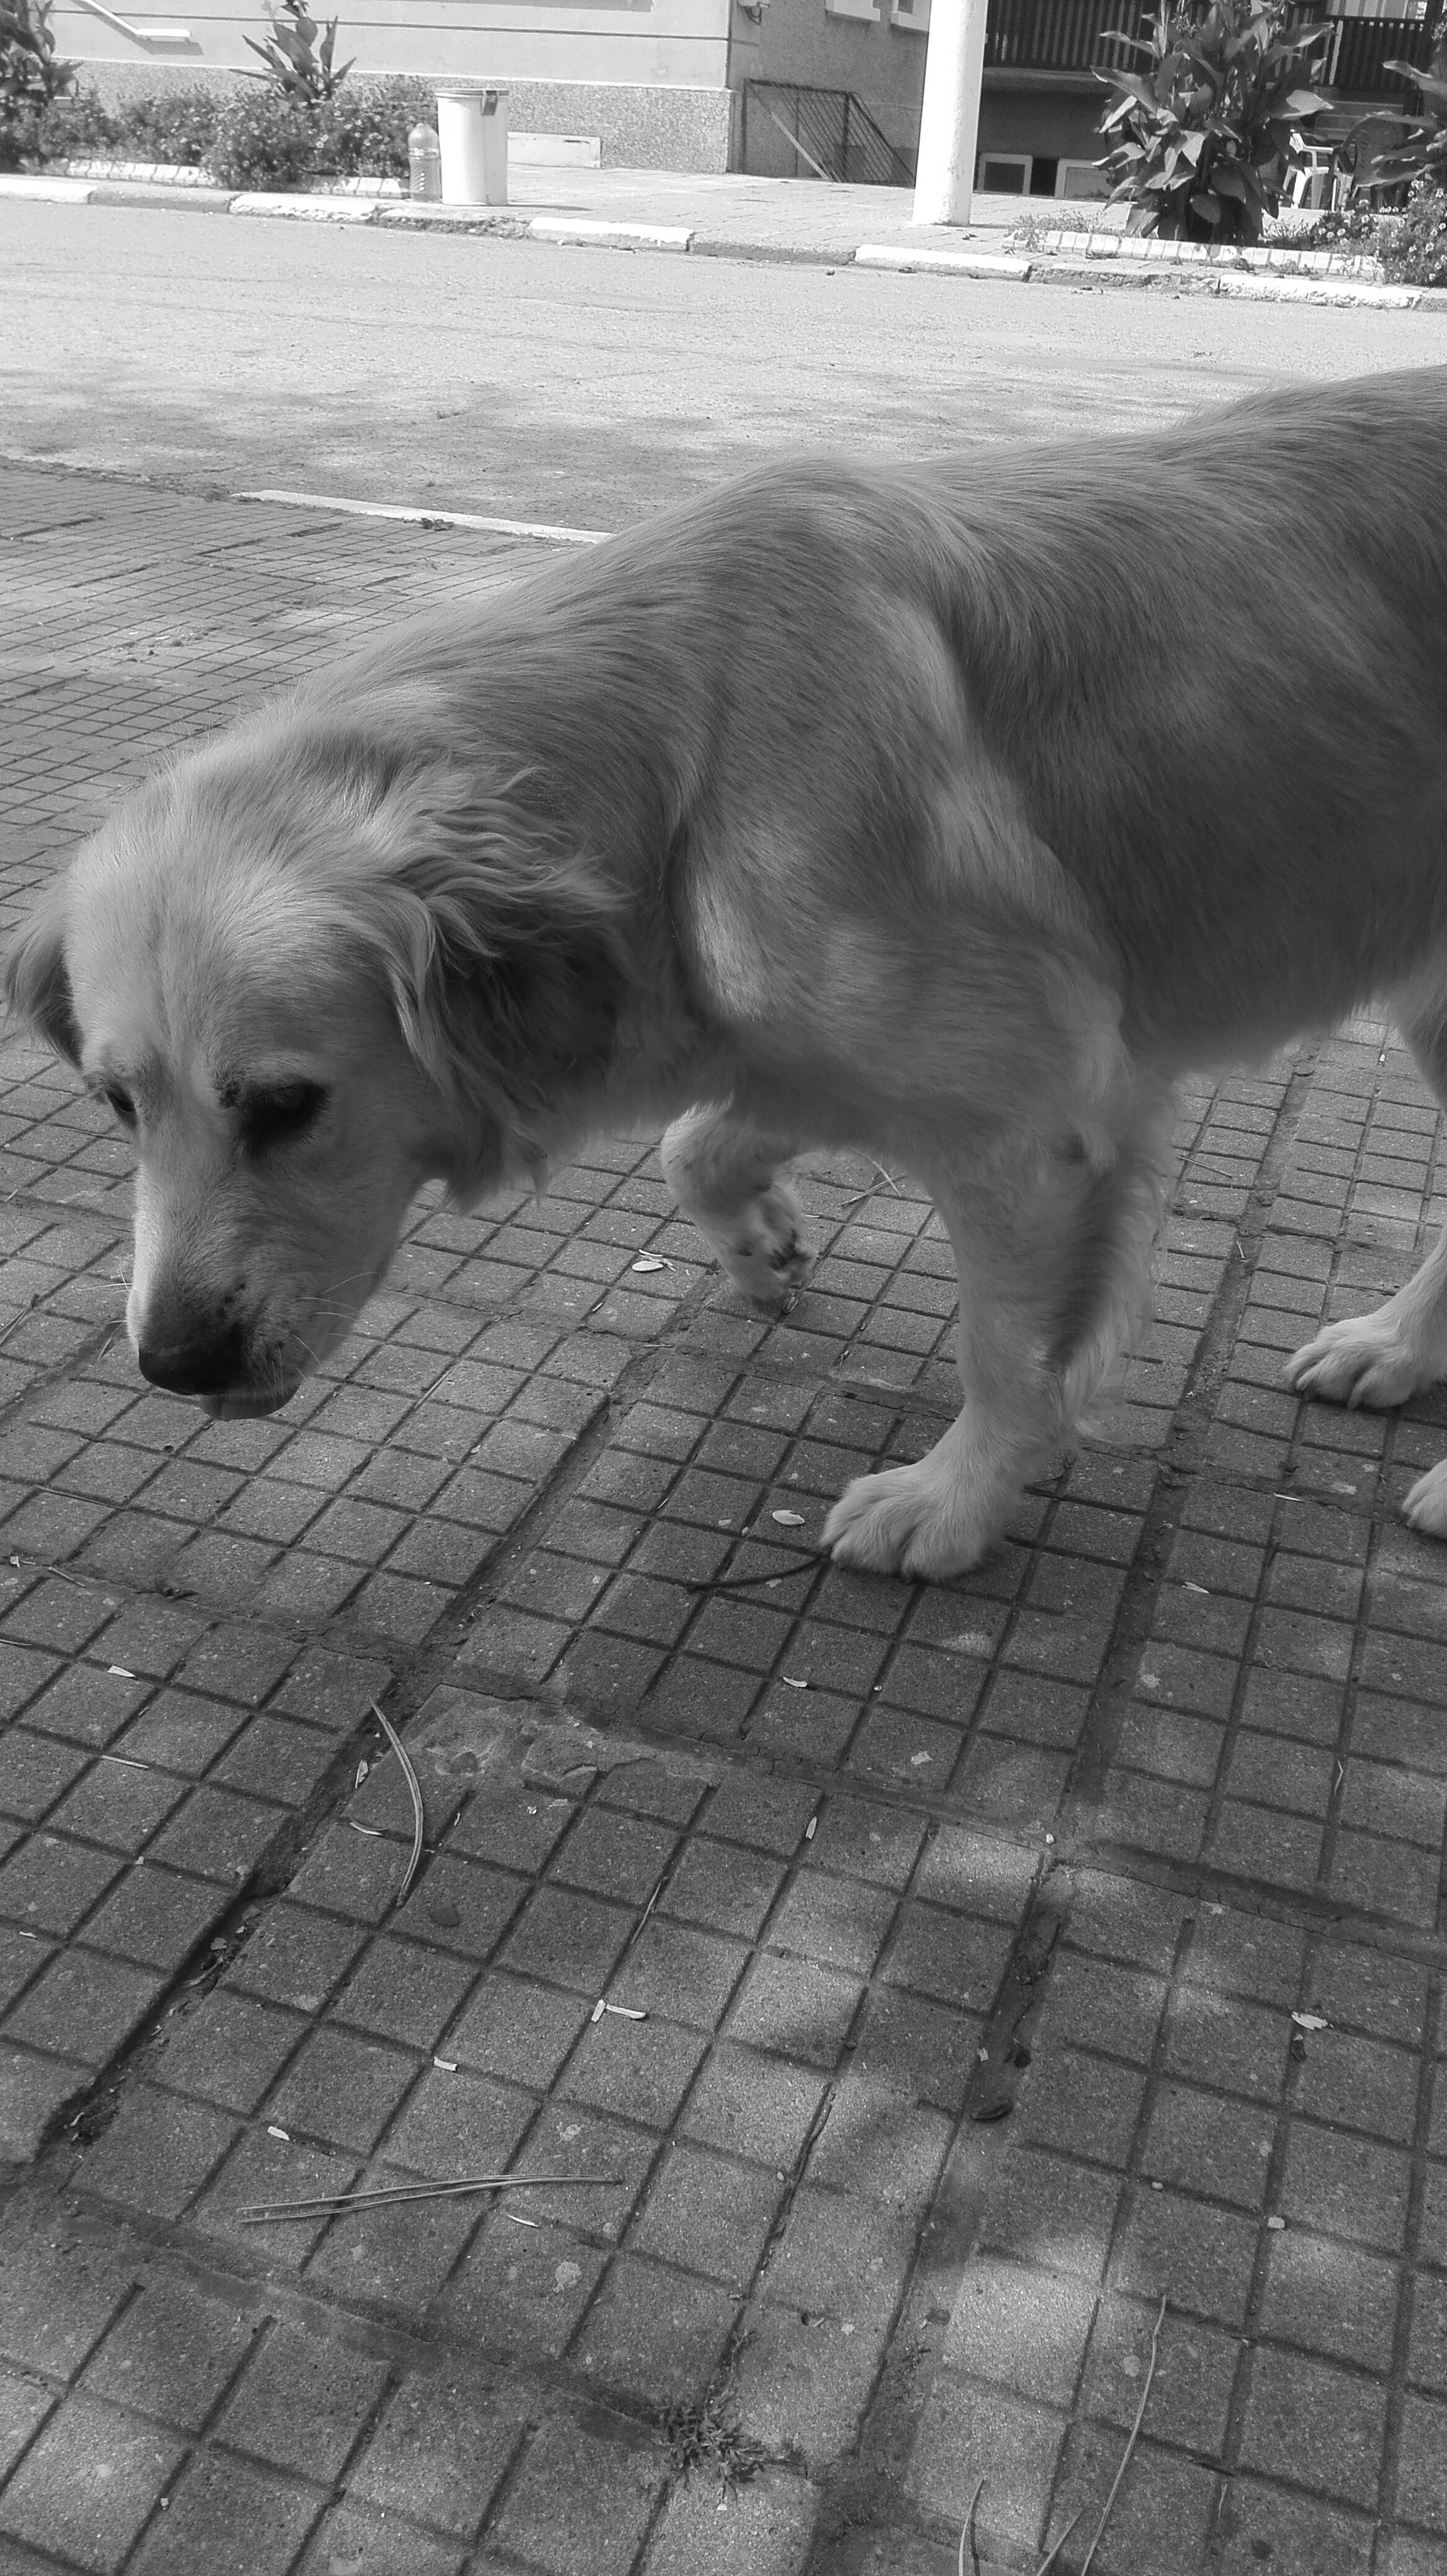 dog, animal themes, domestic animals, pets, mammal, one animal, day, no people, outdoors, nature, close-up